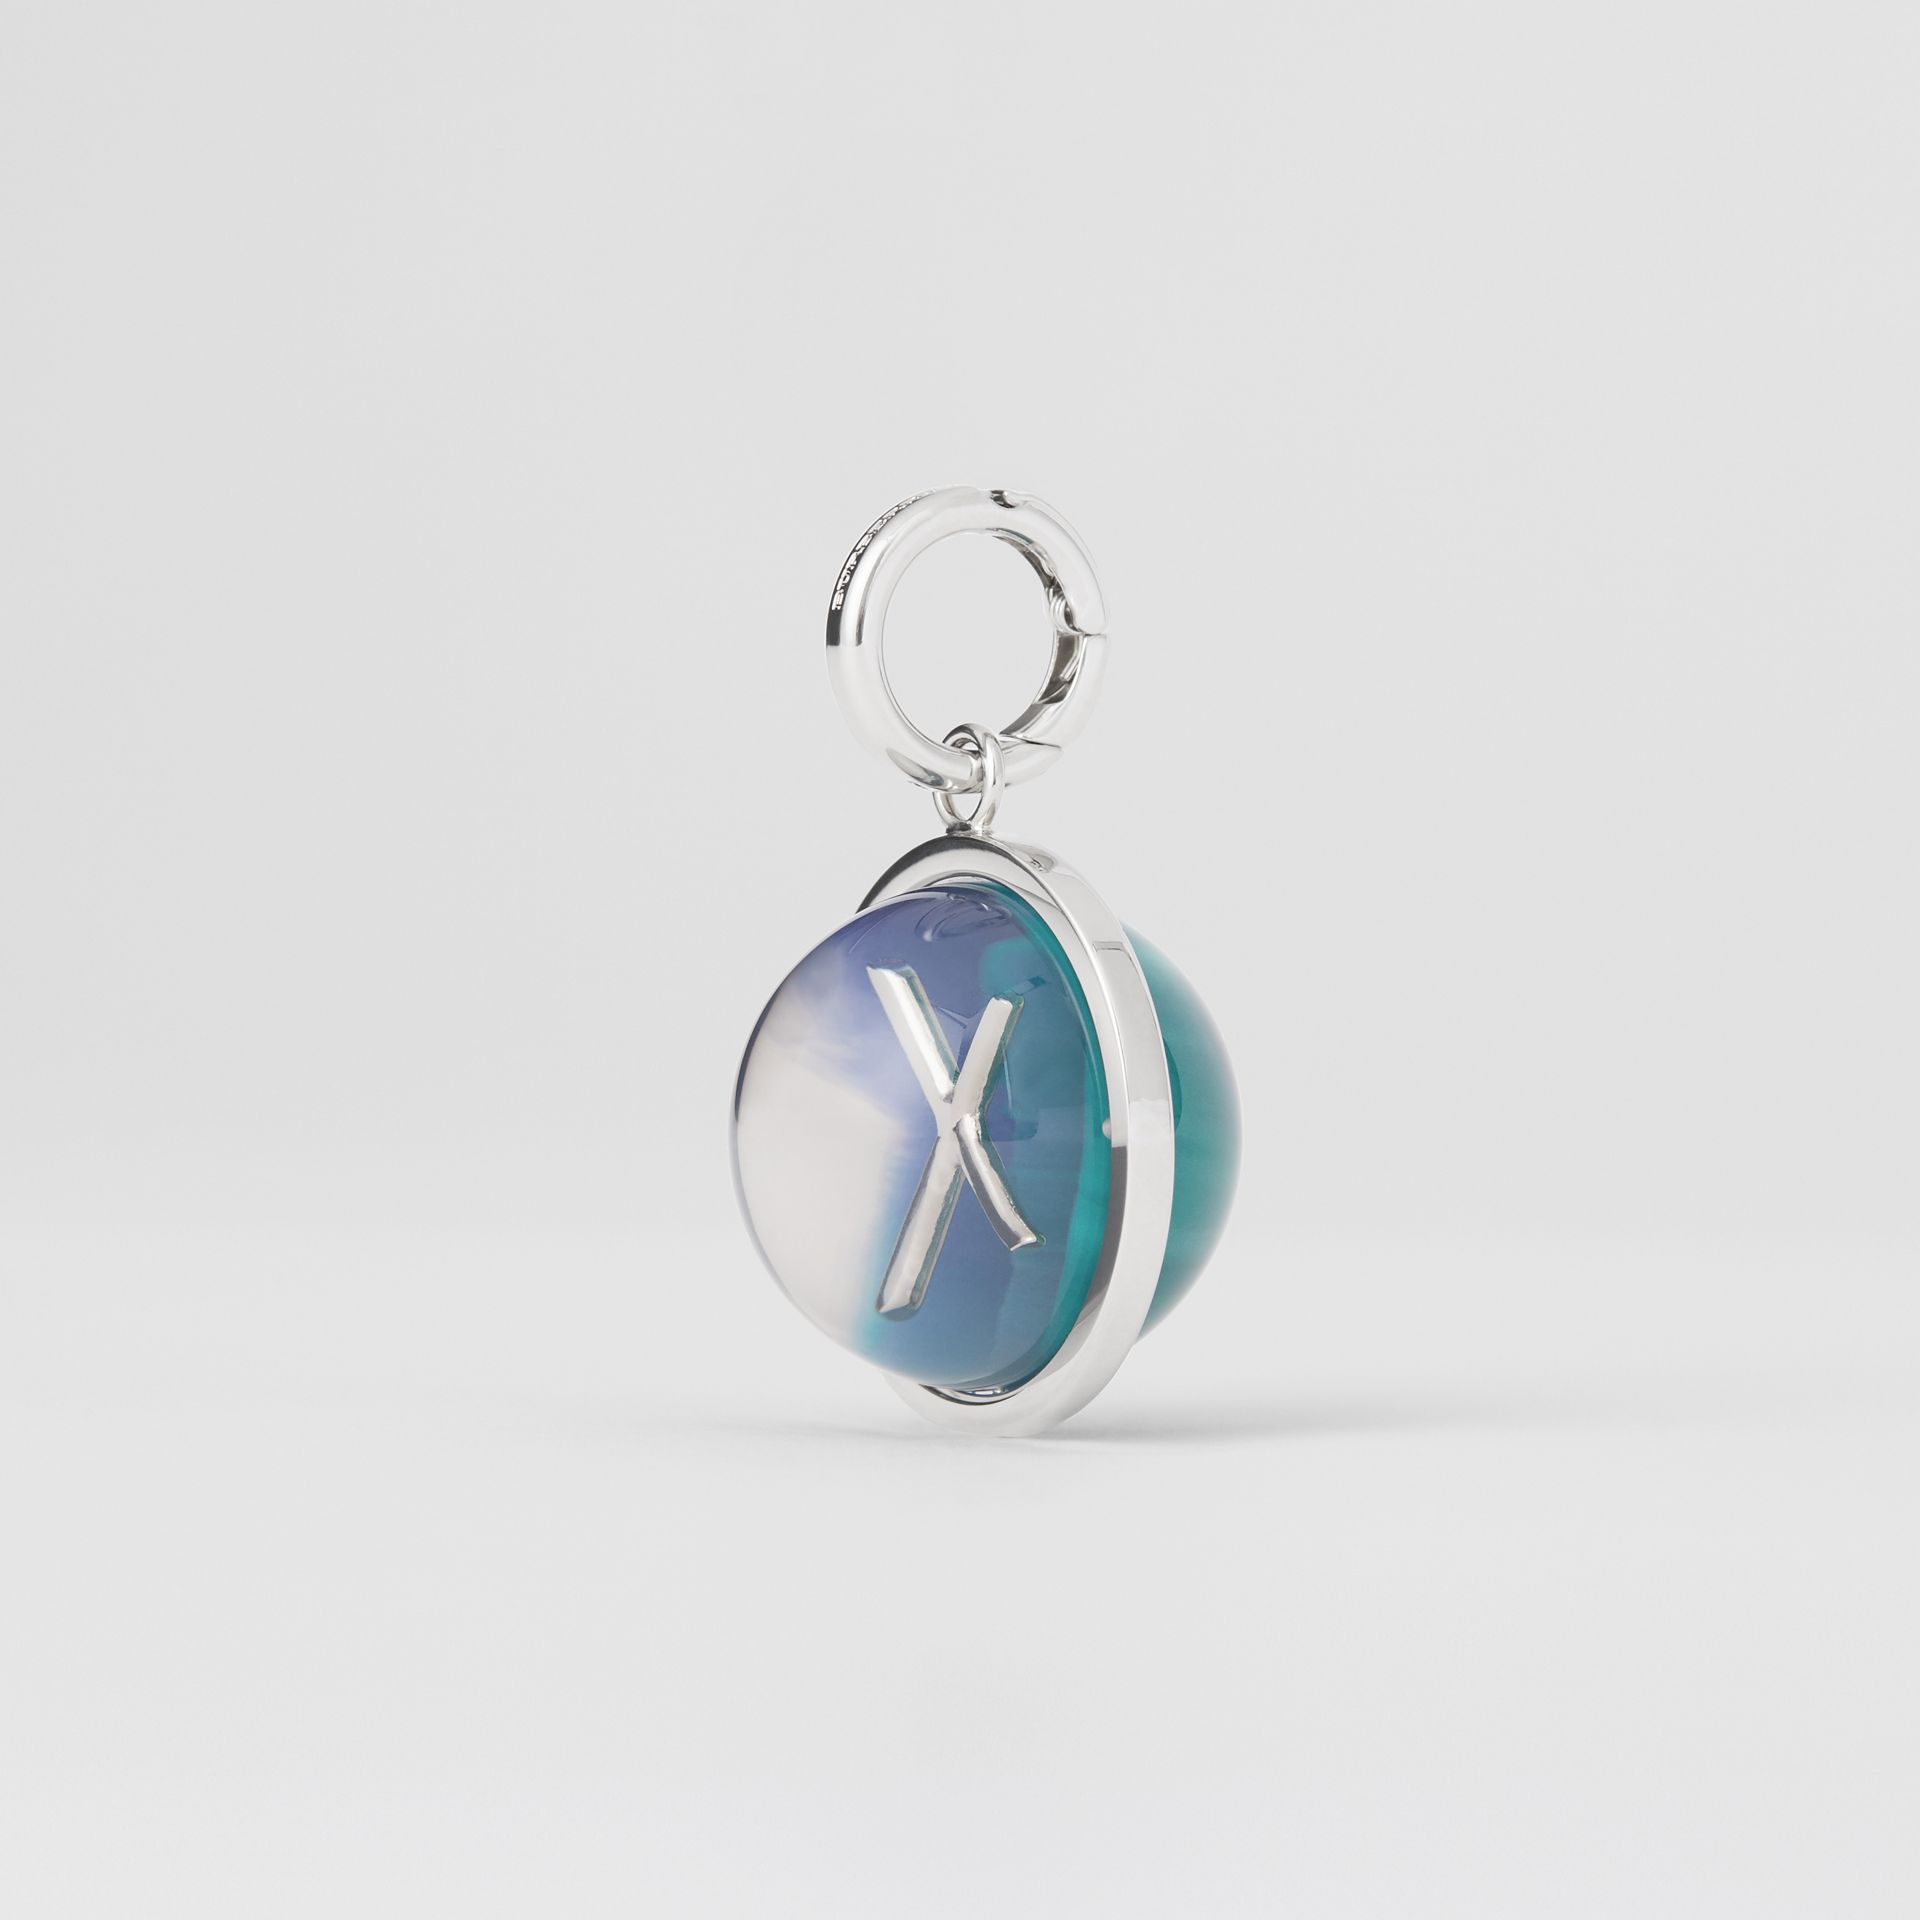 Marbled Resin 'X' Alphabet Charm in Palladio/ocean Blue - Women | Burberry - gallery image 4